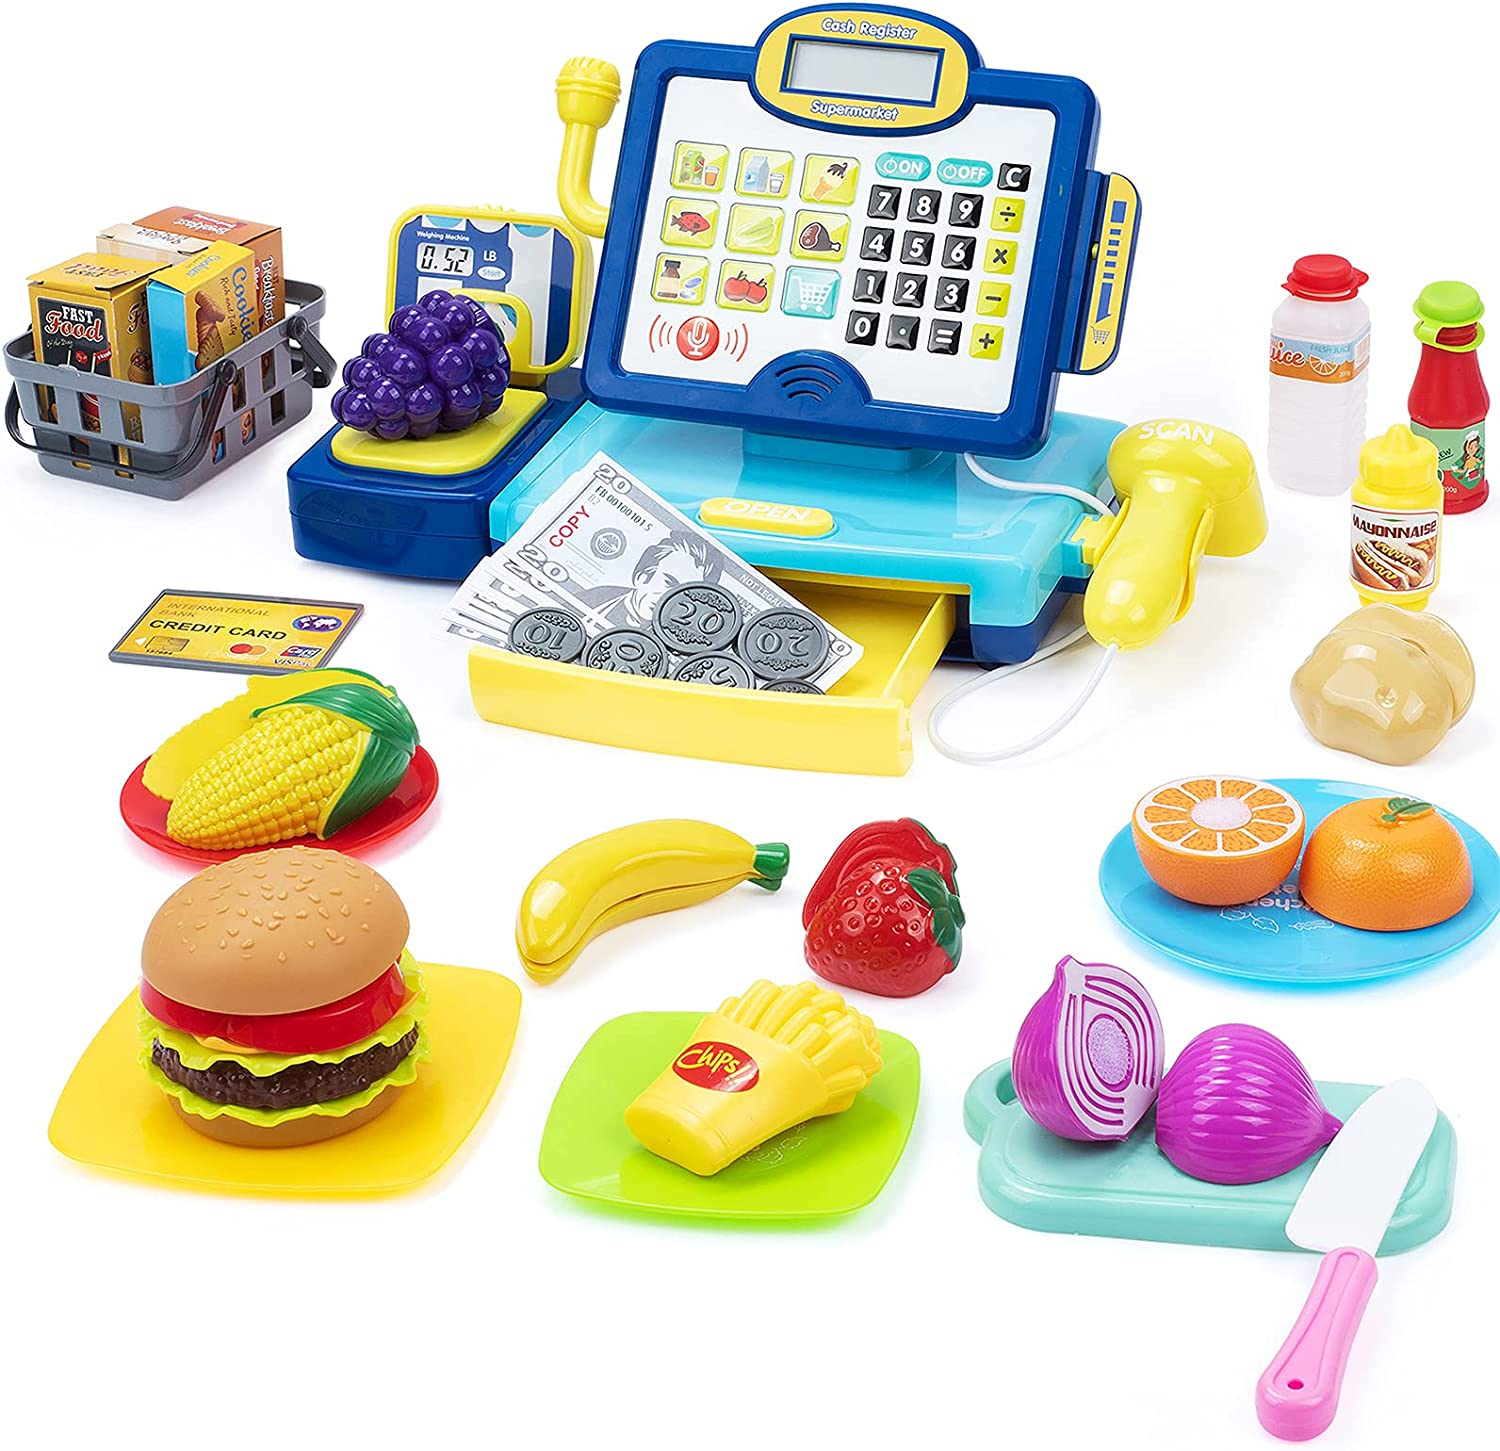 SUPERHIGH Kids Cash Register Toy with Cuttable Food, Scaner, Microphone, Play Money, Calculator Cash Register for Toddler, Great Grocery Pre-School Gift for Boys & Girls, Ages 3 4 5 6 7 8, Blue